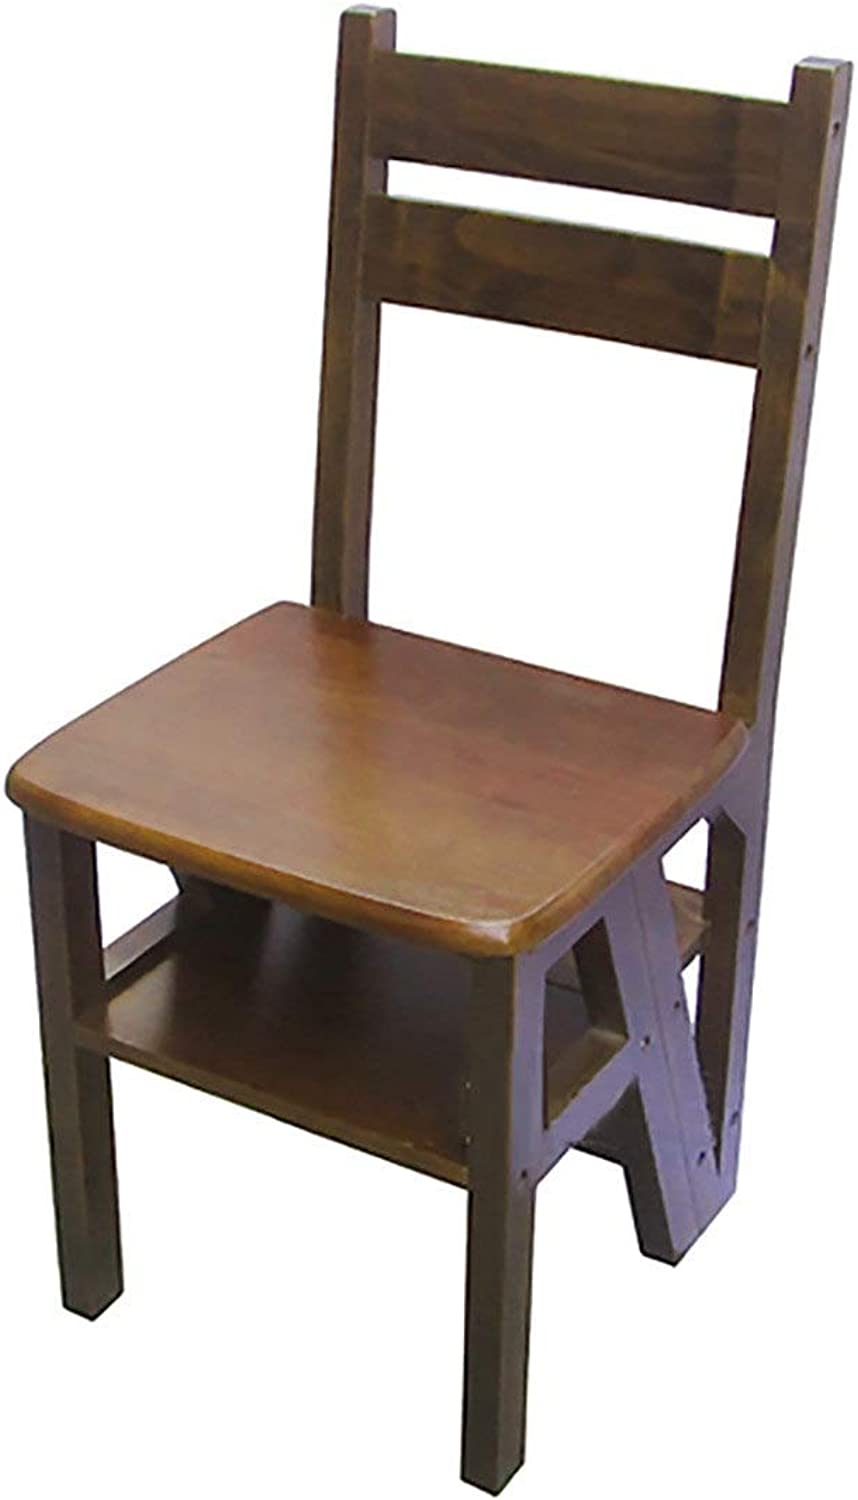 Chair-Stool Dining Folding Seat Kitchen Breakfast Portable Retro Brown Solid Wood Bench with Backrest